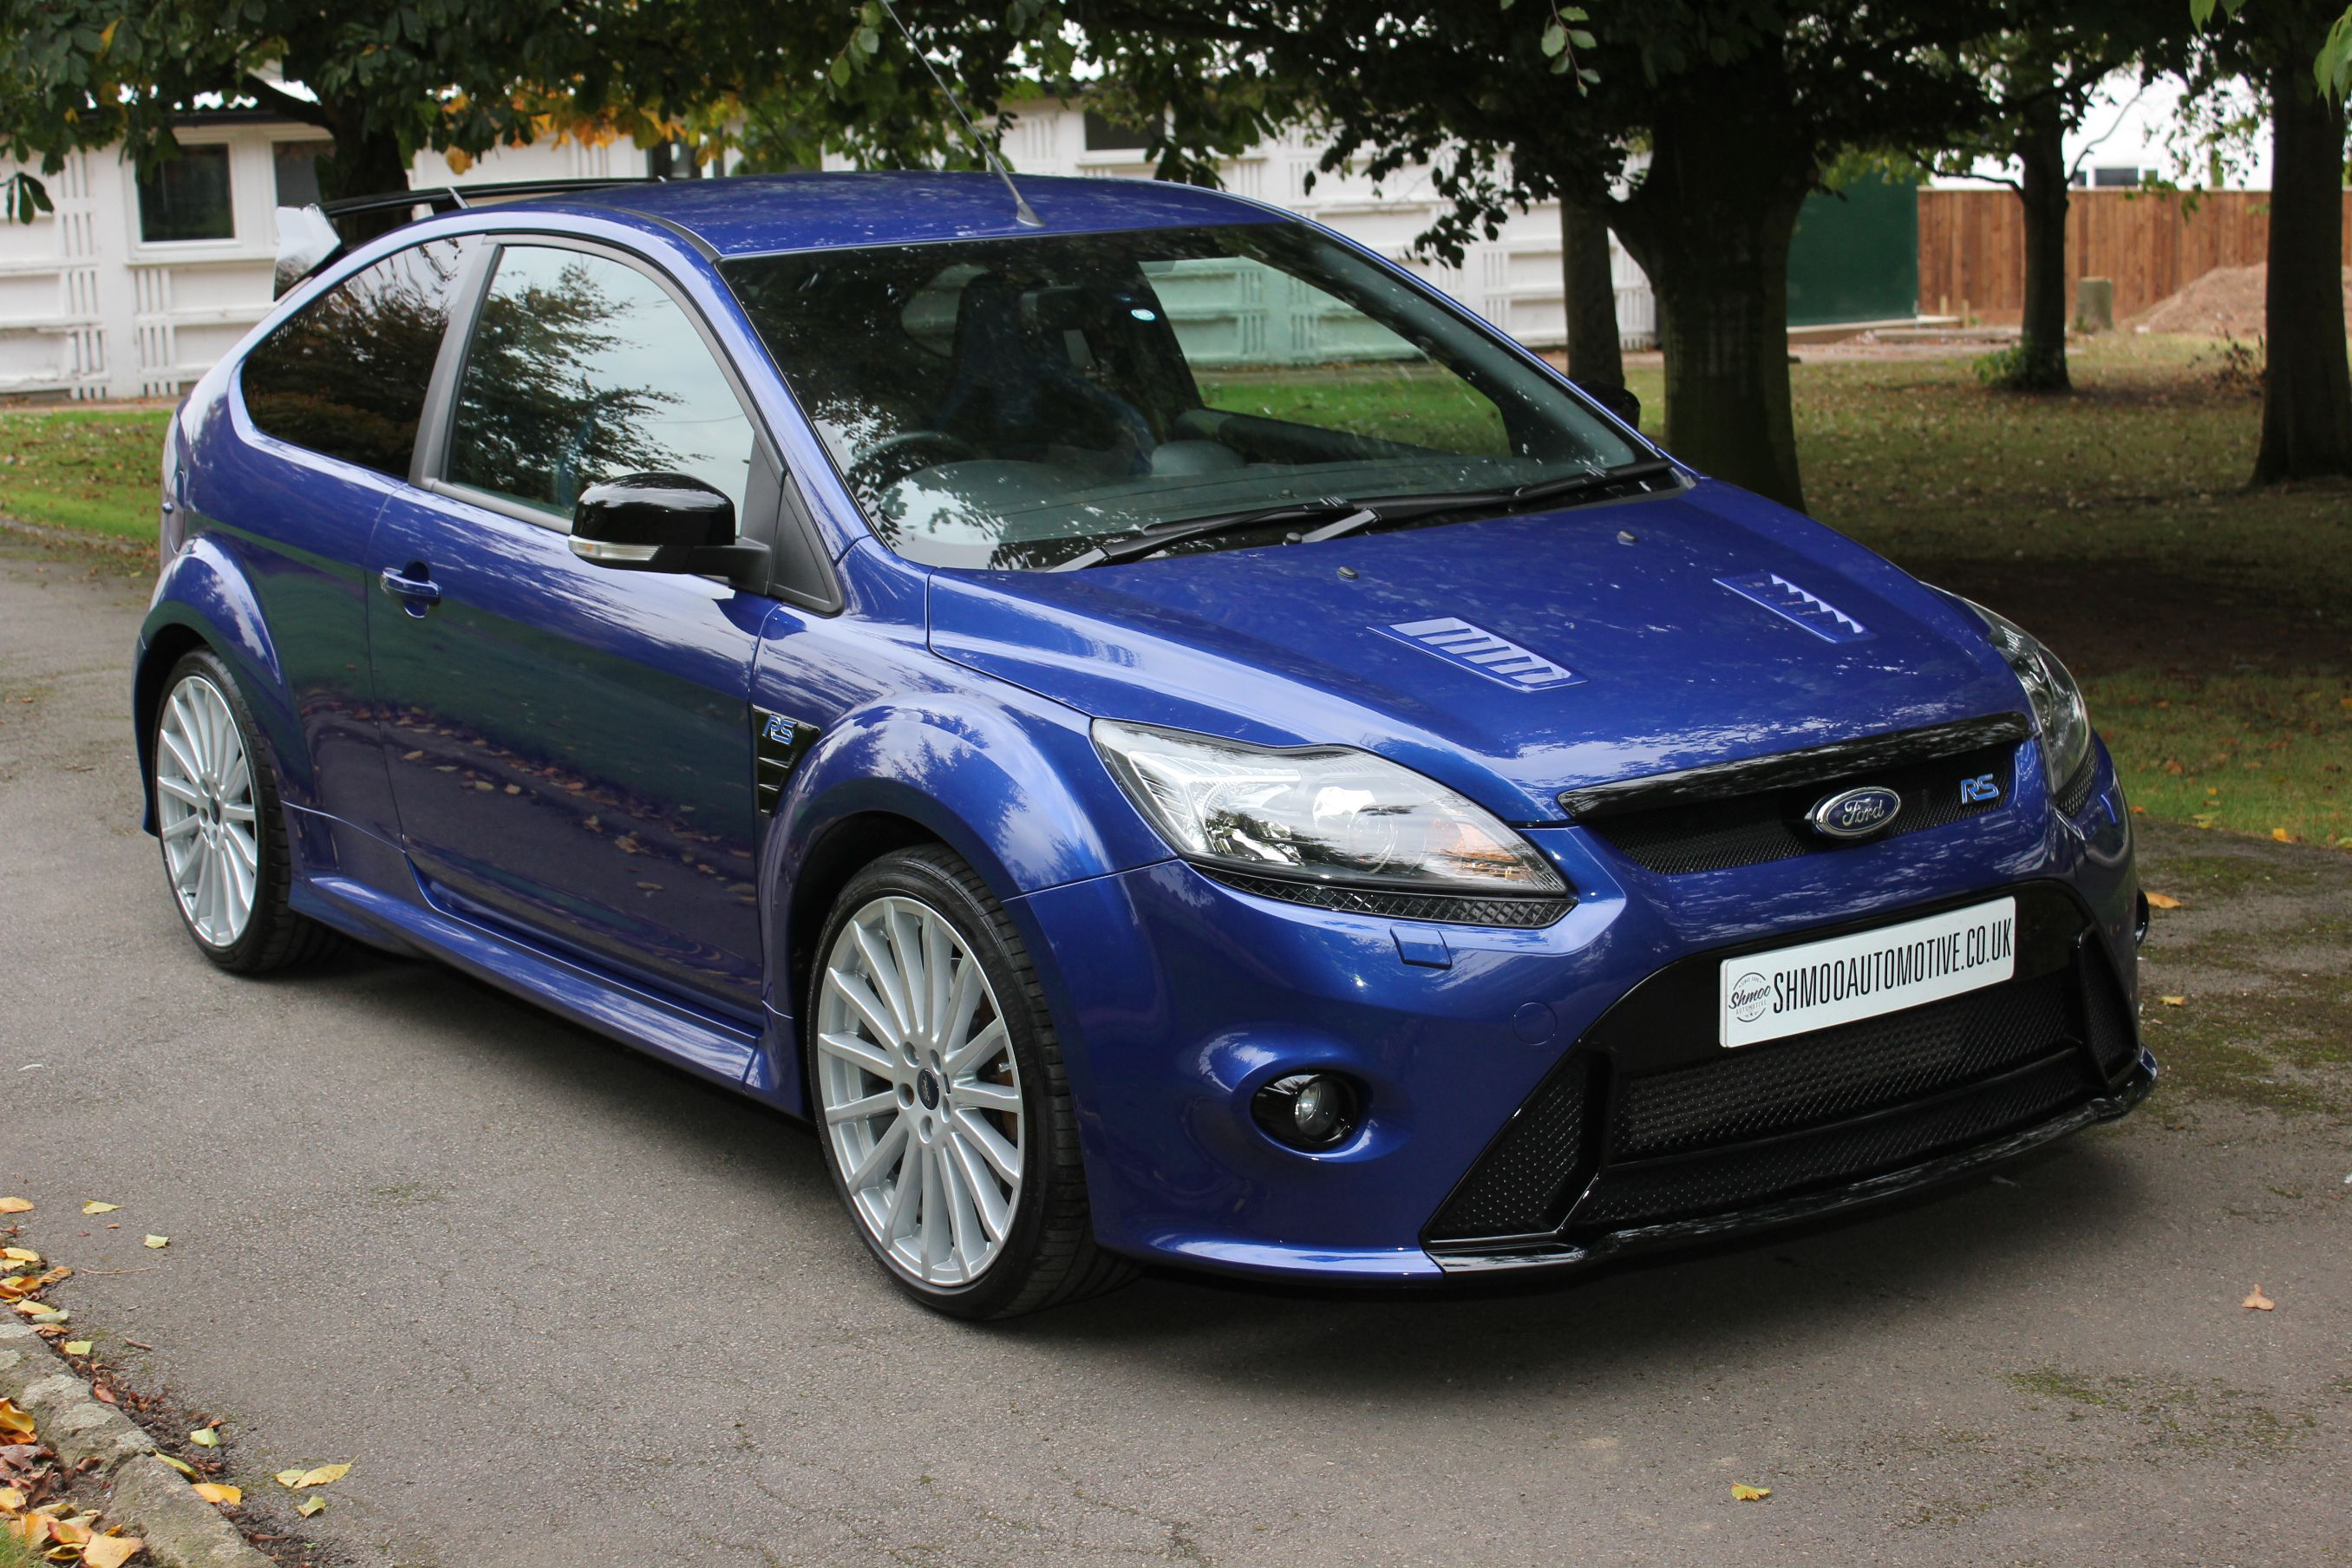 Ford Focus Rs Mk2 Stunning 1 Owner Car With 15 000 Miles Ffsh Shmoo Automotive Tvr Sports Cars Sales Shmoo Automotive Tvr Sports Cars Sales